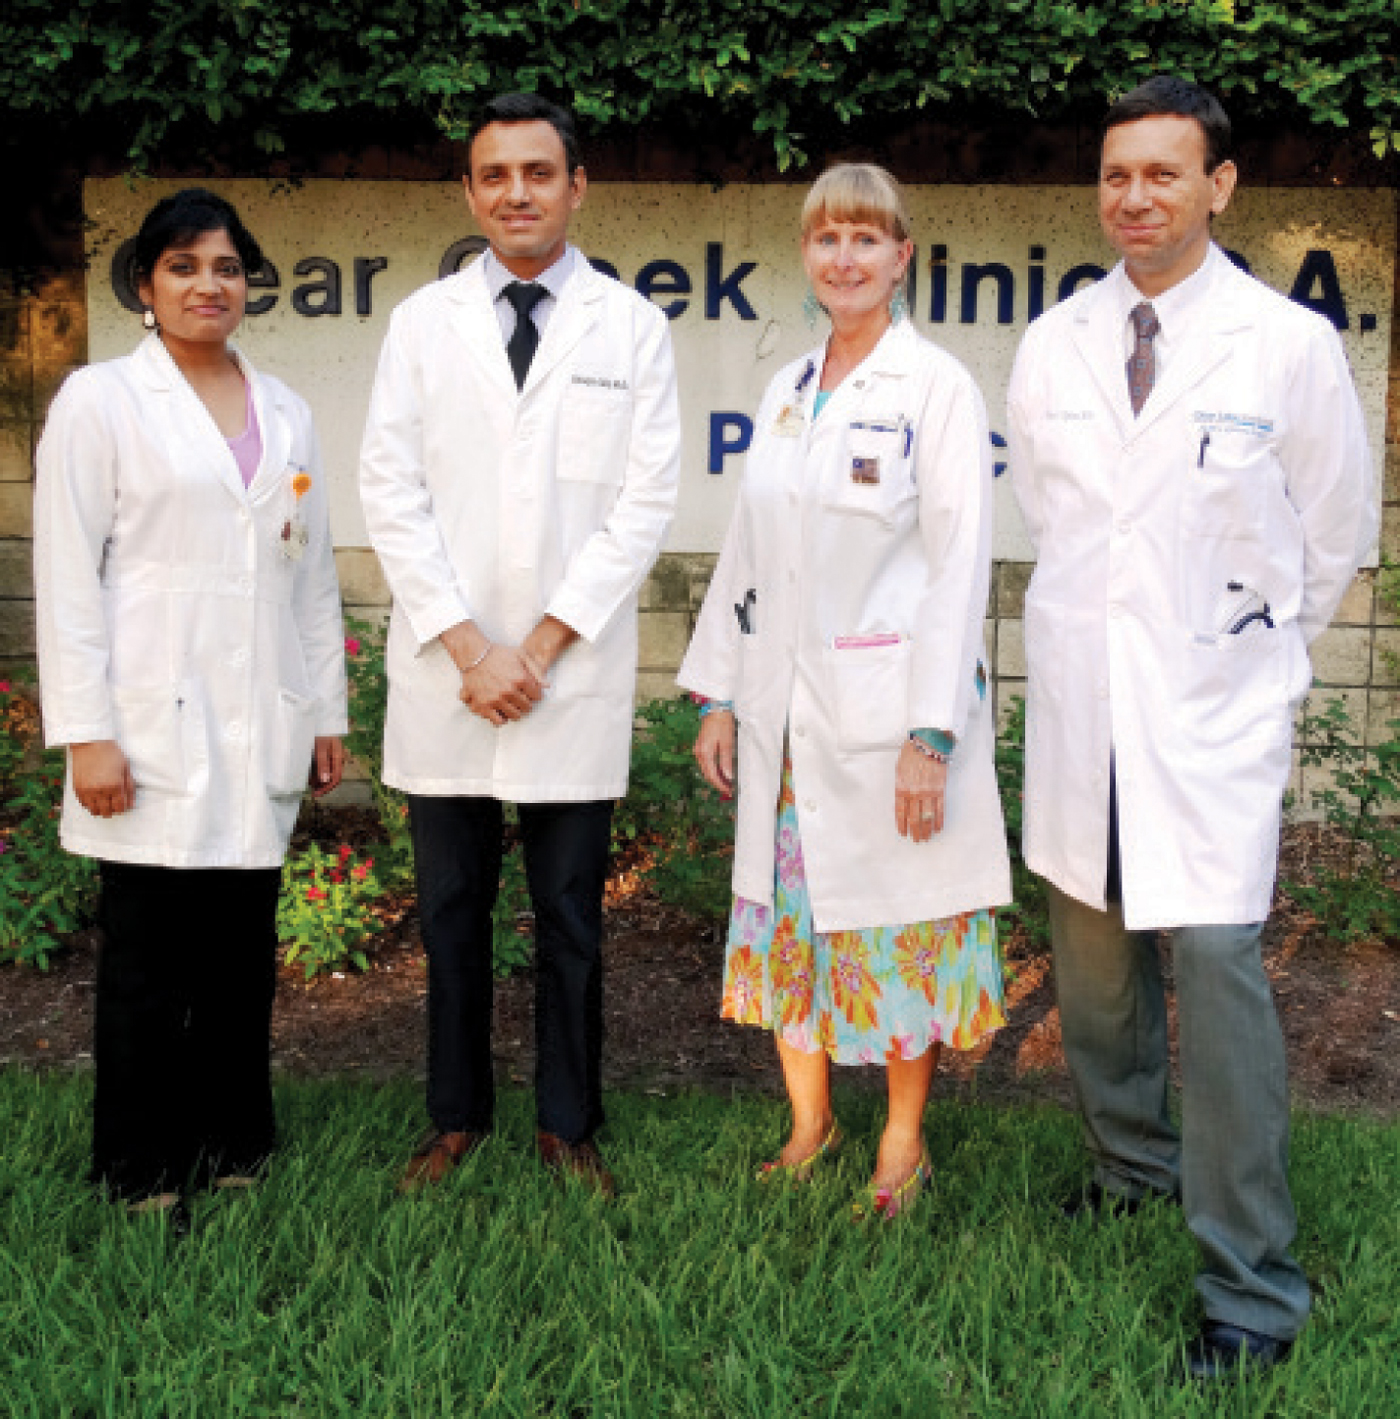 Clear Creek Clinic family physicians Dr. Chaitanya Alli, Dr. Shivjit Gill, Dr. Janice Teer, and Dr. Brian Aquino, from left, have joined the medical team at Houston Methodist St. John Hospital.